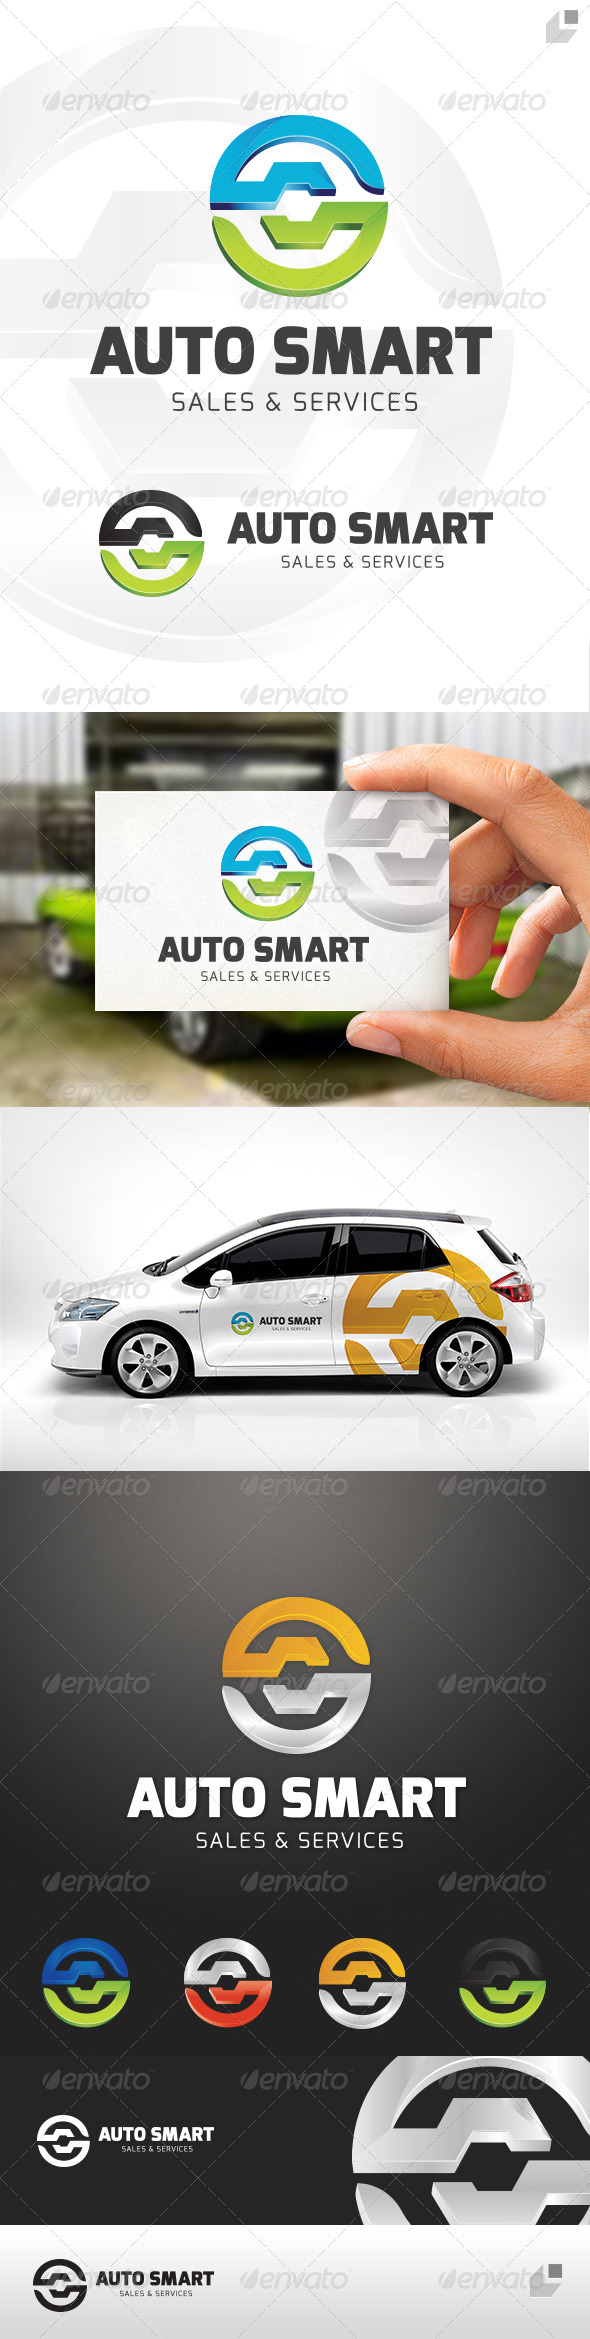 Auto Smart Logo - 3d Abstract